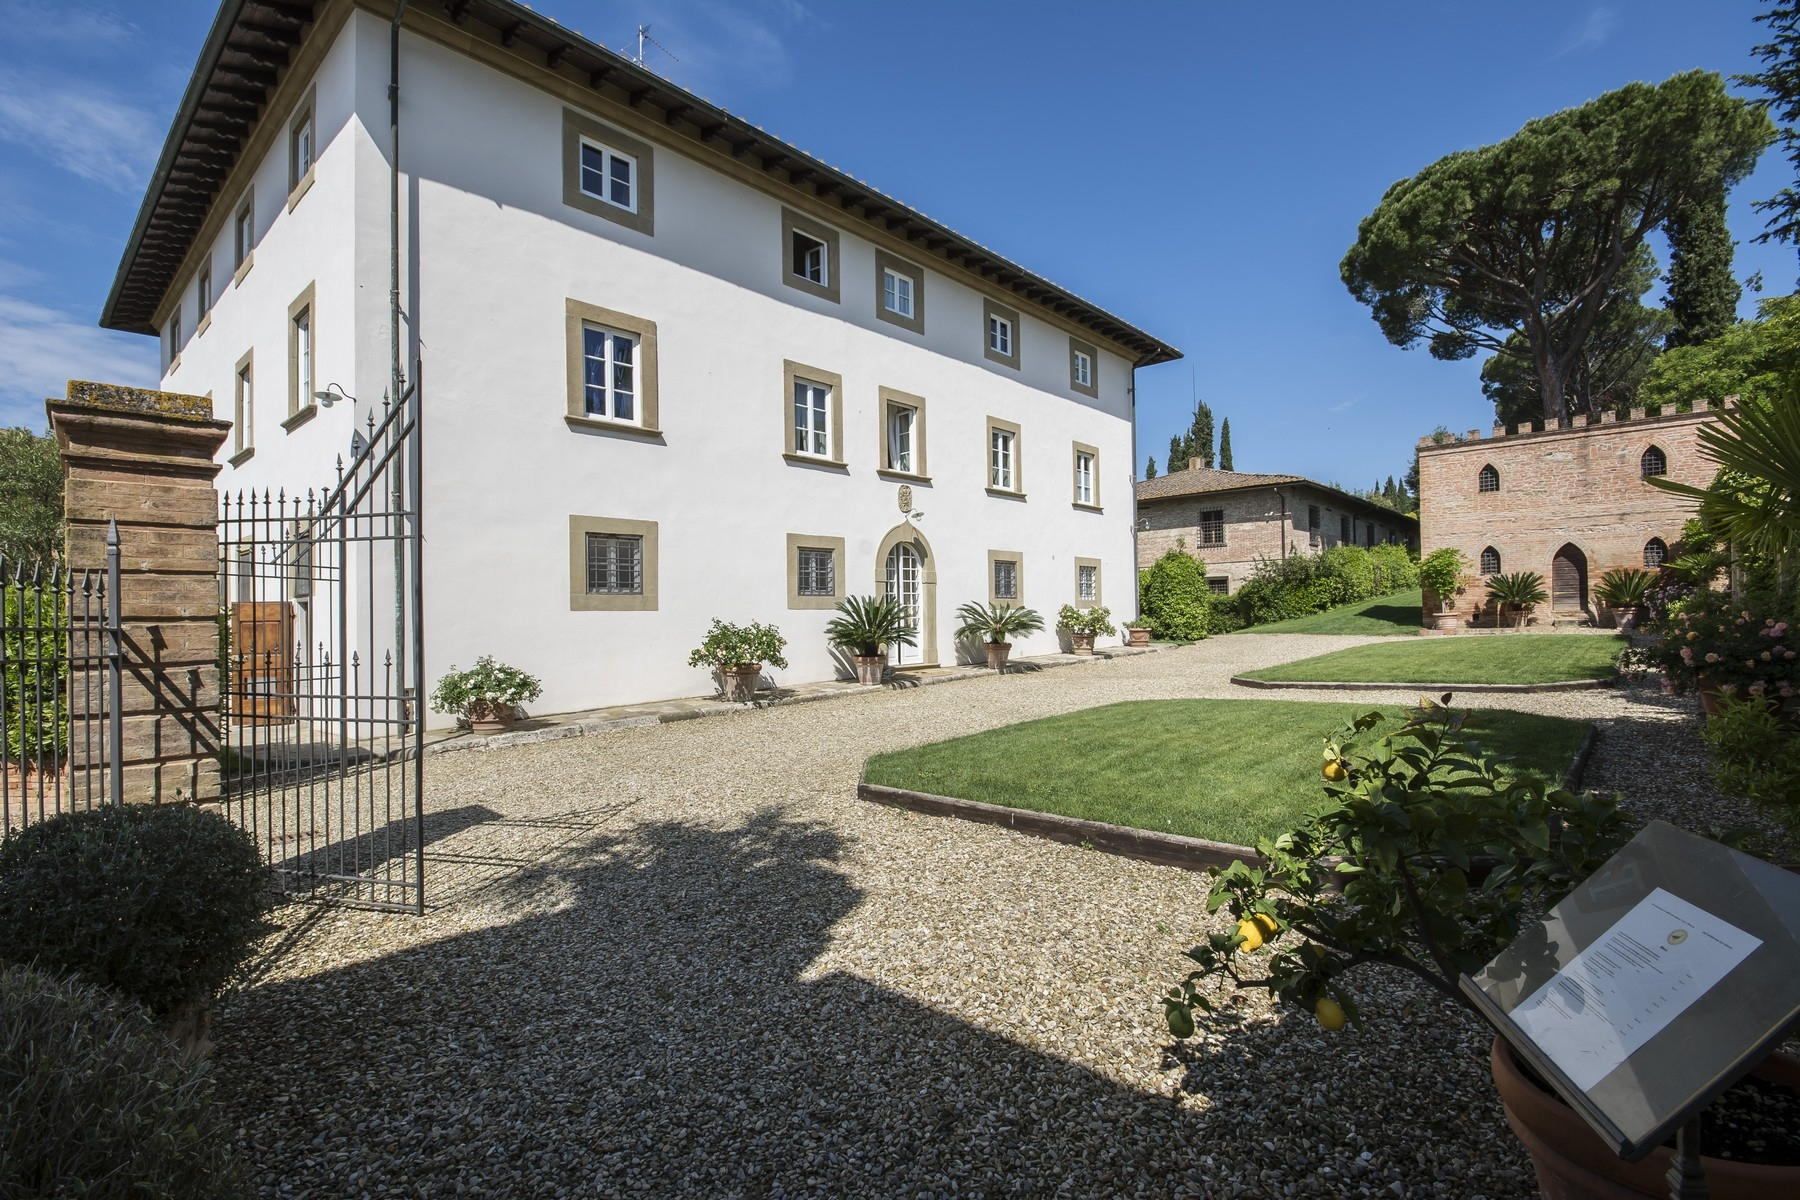 Apartments 용 매매 에 Beautiful historic estate in the heart of Tuscany Peccioli, Pisa 이탈리아